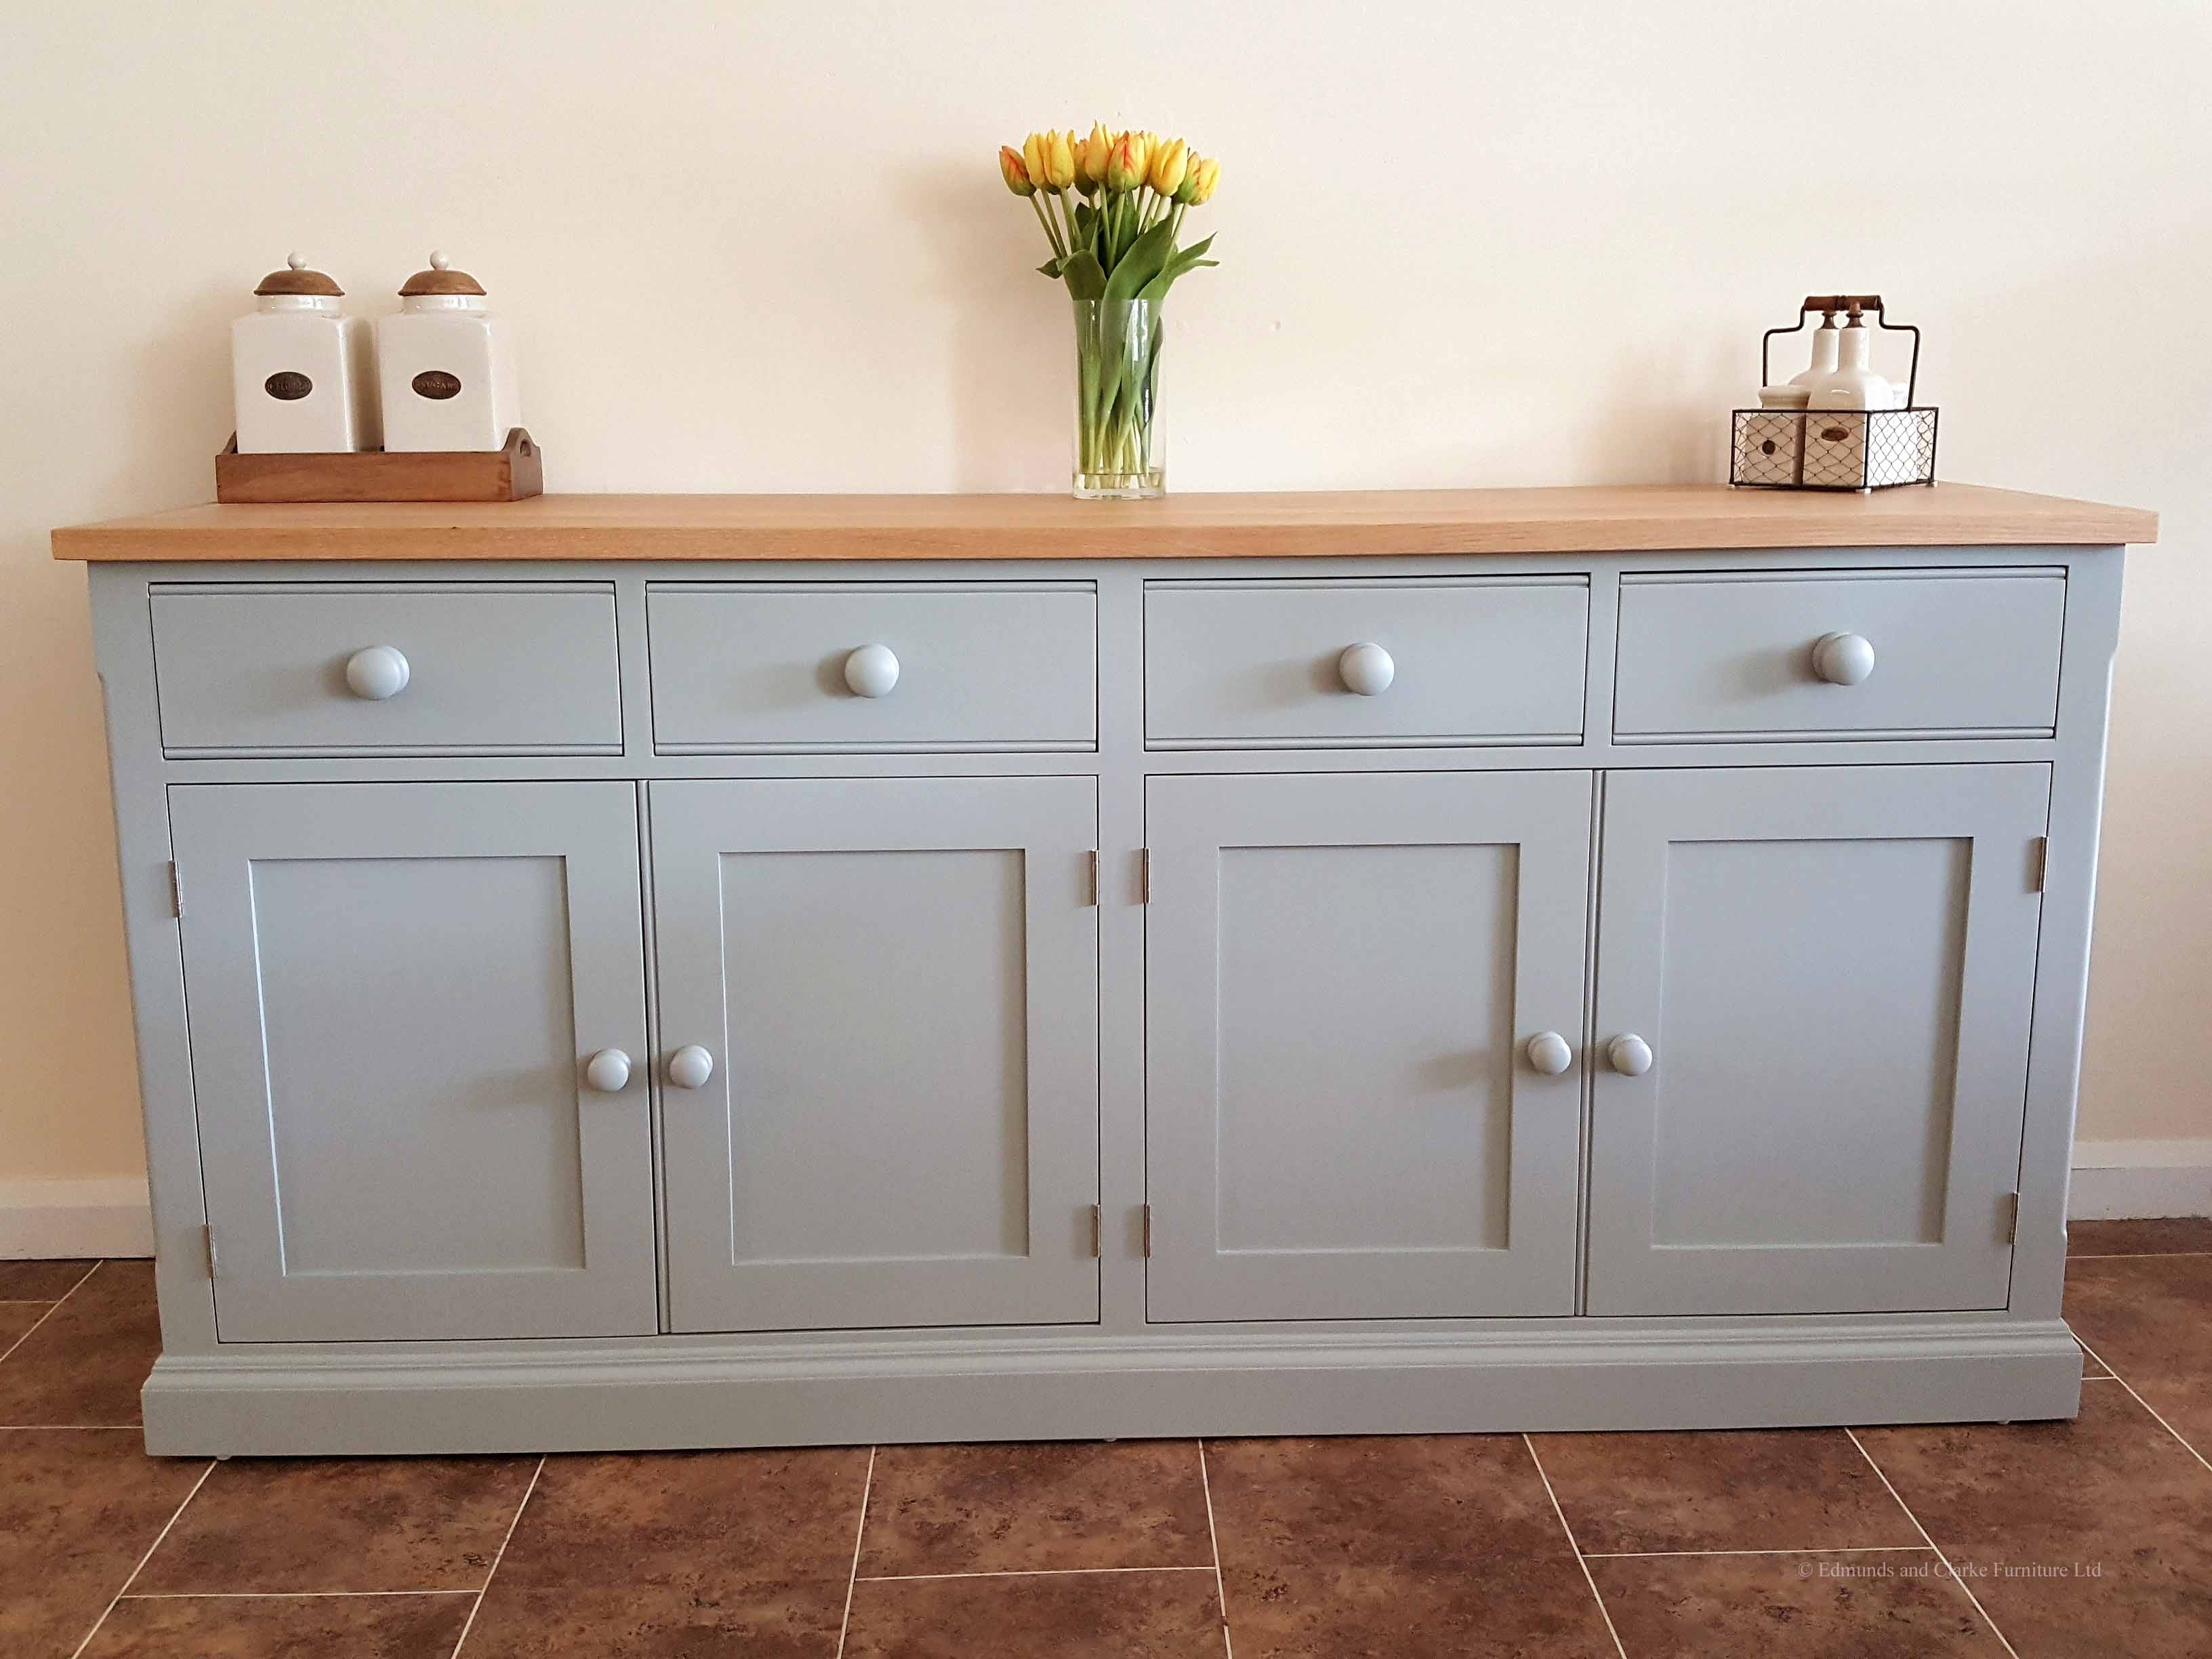 Inspiration about Painted 6Ft 6 Inch Sideboard – Edmunds & Clarke Furniture Intended For Recent 4 Door Wood Squares Sideboards (#16 of 20)